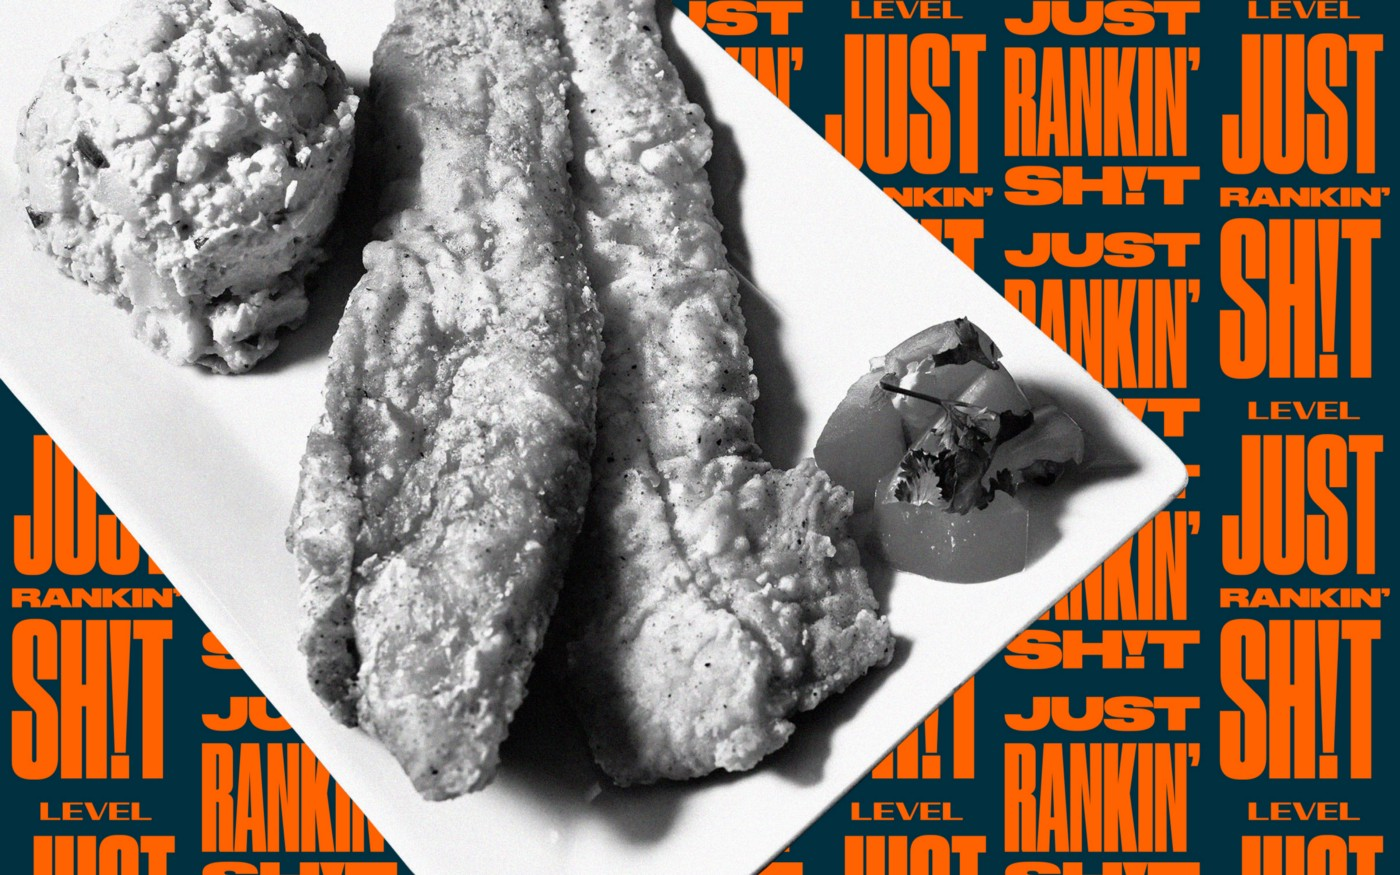 Photo Illustration of fried chicken.